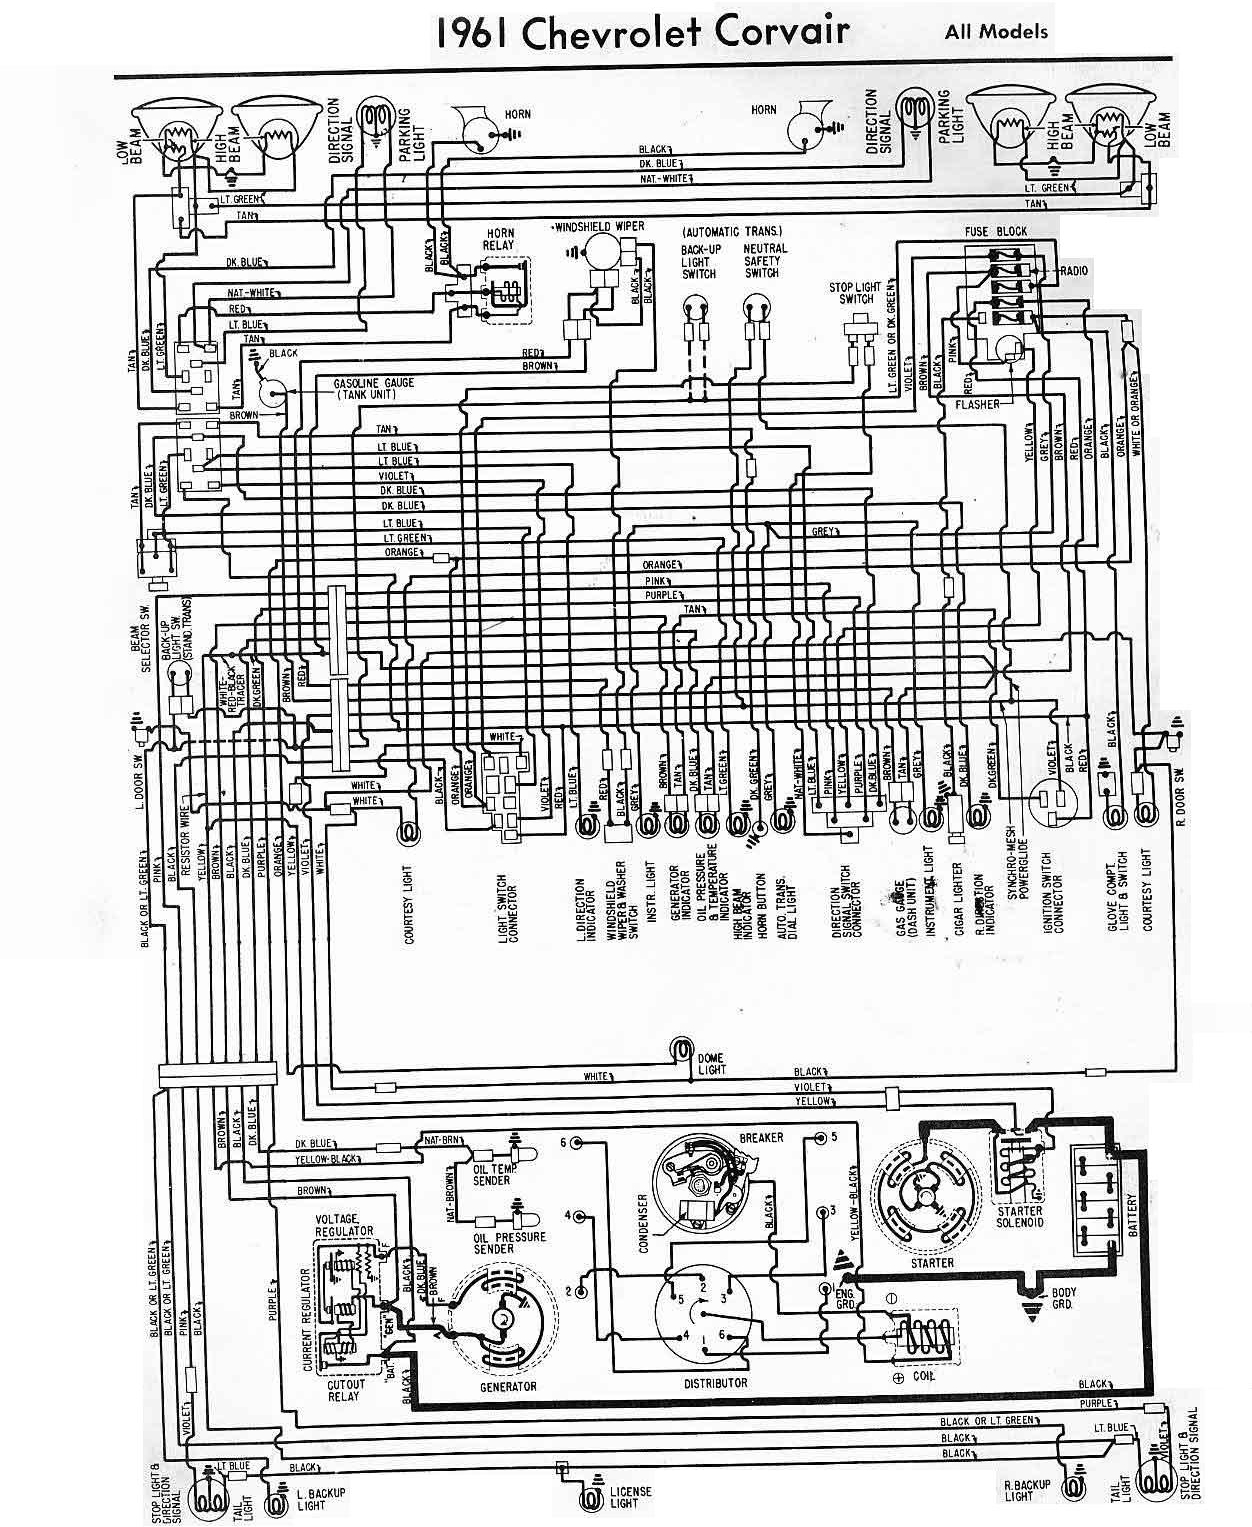 triton snowmobile trailer wiring diagram images hazard flasher triton boat wiring diagram additionally corvair electrical wiring